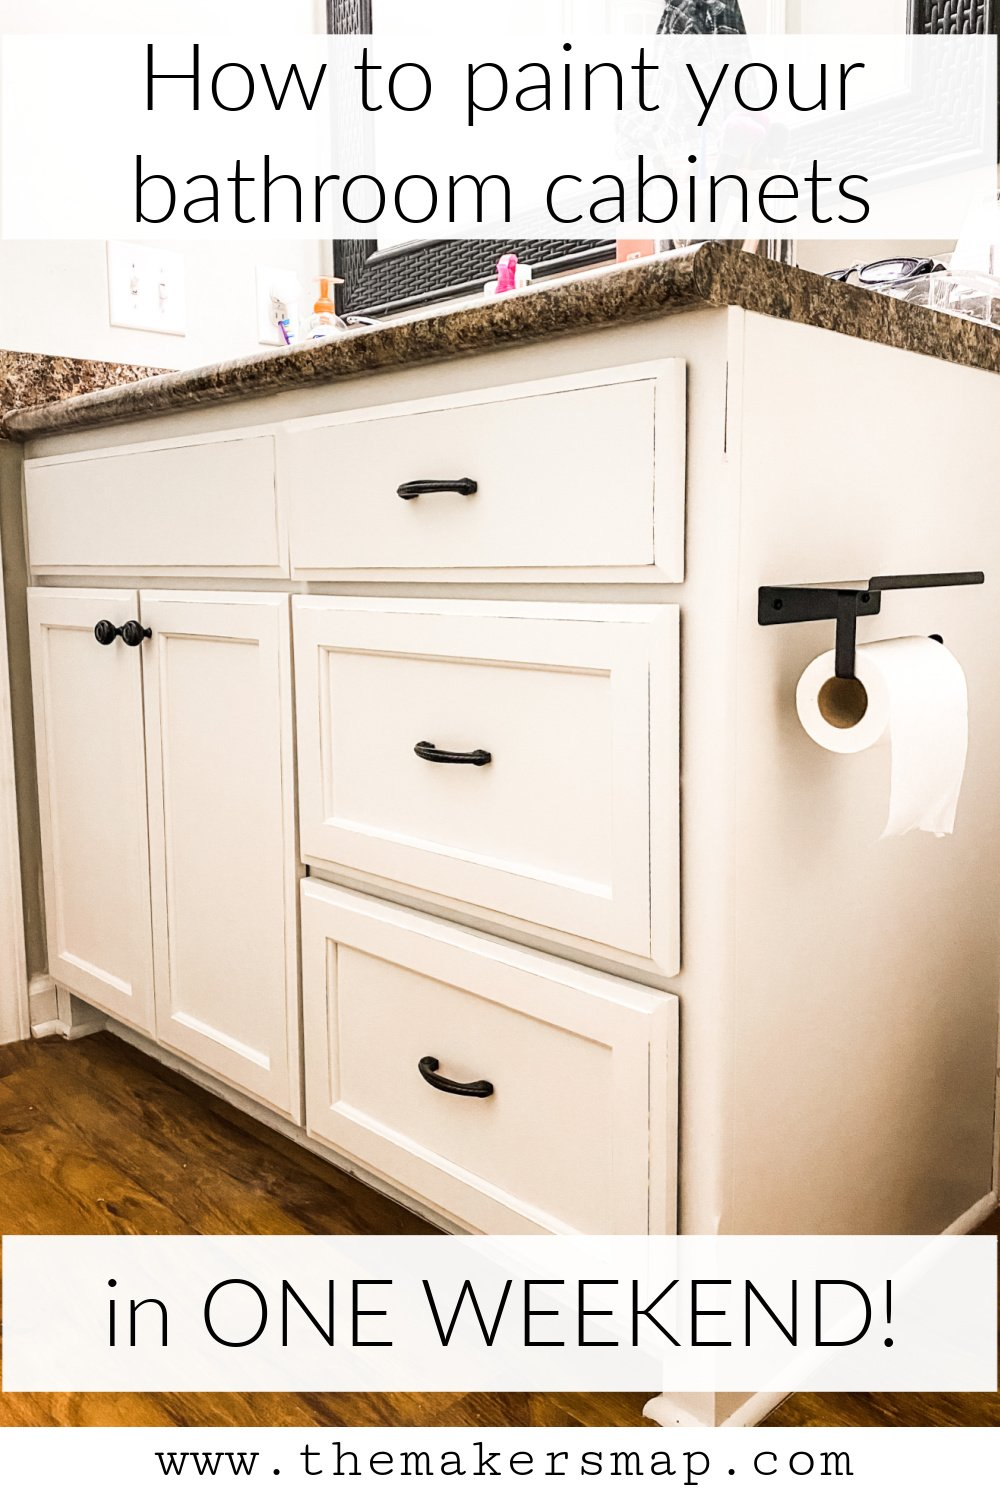 paint your bathroom cabinets in one weekend